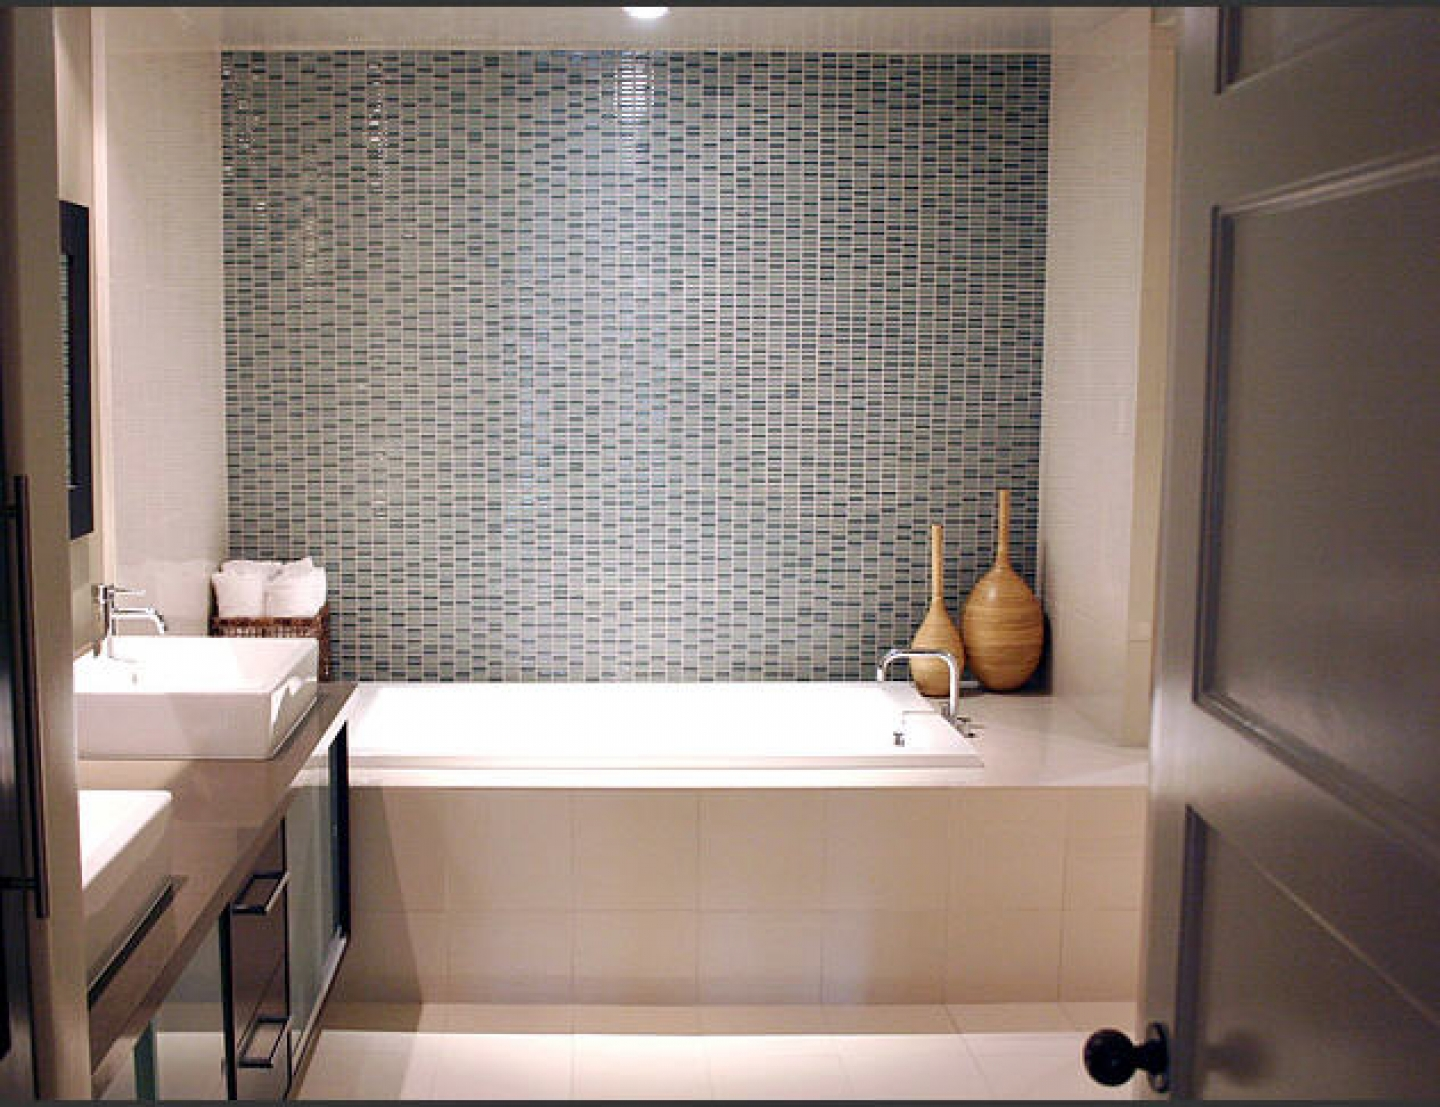 Bathroom ideas for small space for Bathroom ideas with tub